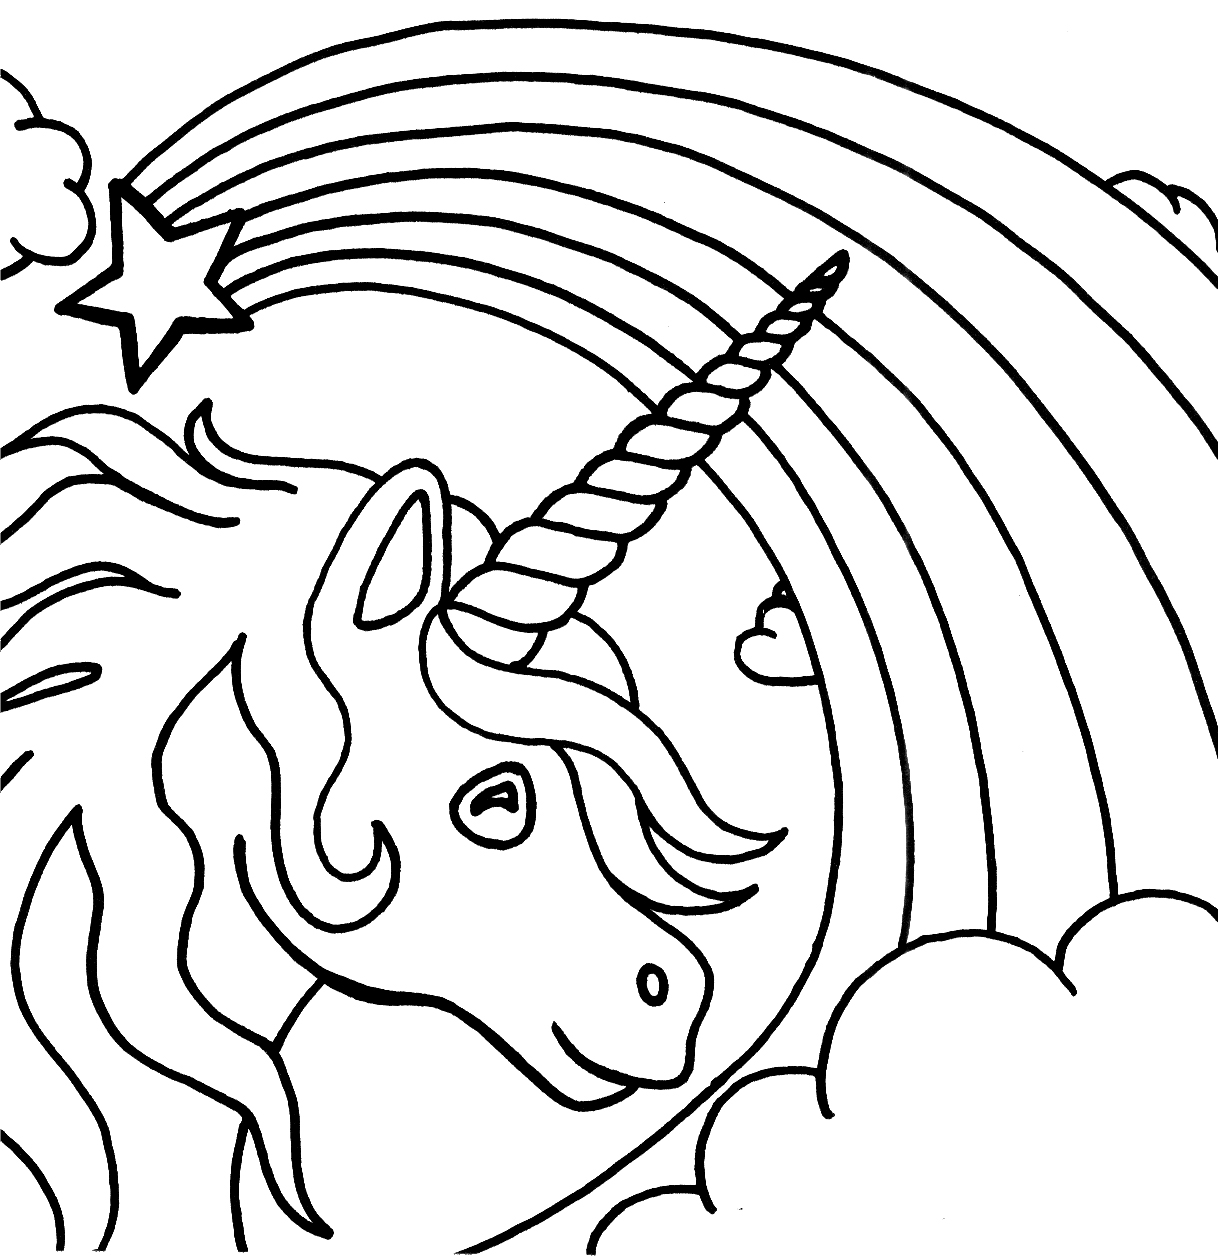 1218x1258 Coloring Pages Outstanding Rainbow Coloring Pages Ideas Rainbow